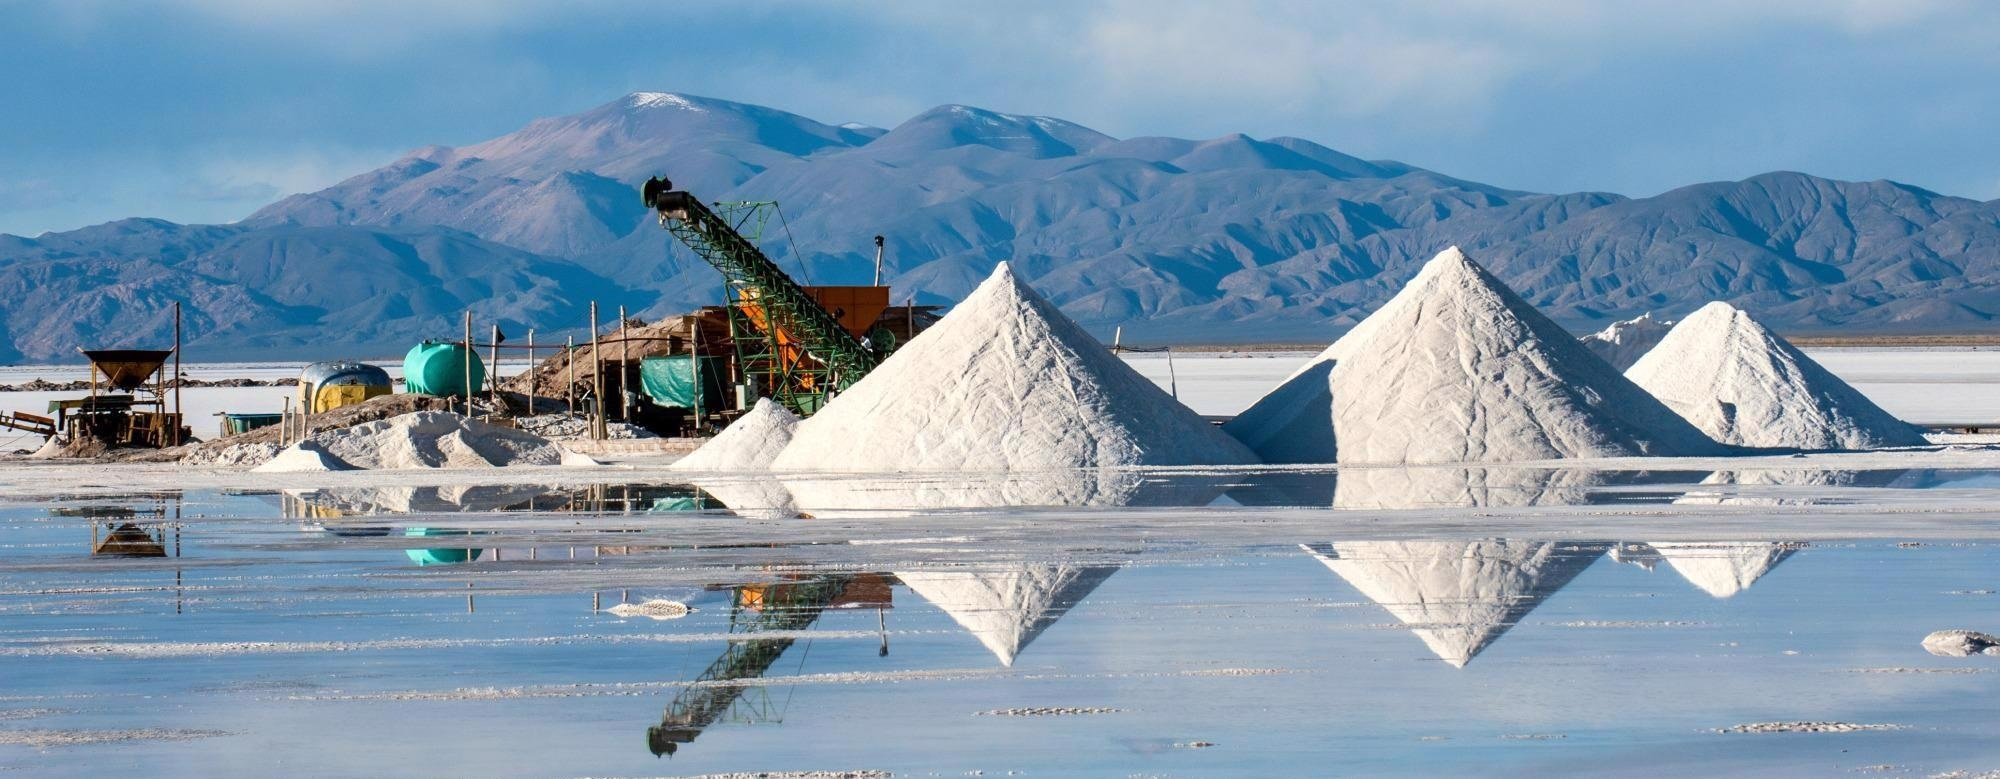 Alpha Lithium Reports Completion of Phase 2 Drilling at Tolillar Salar